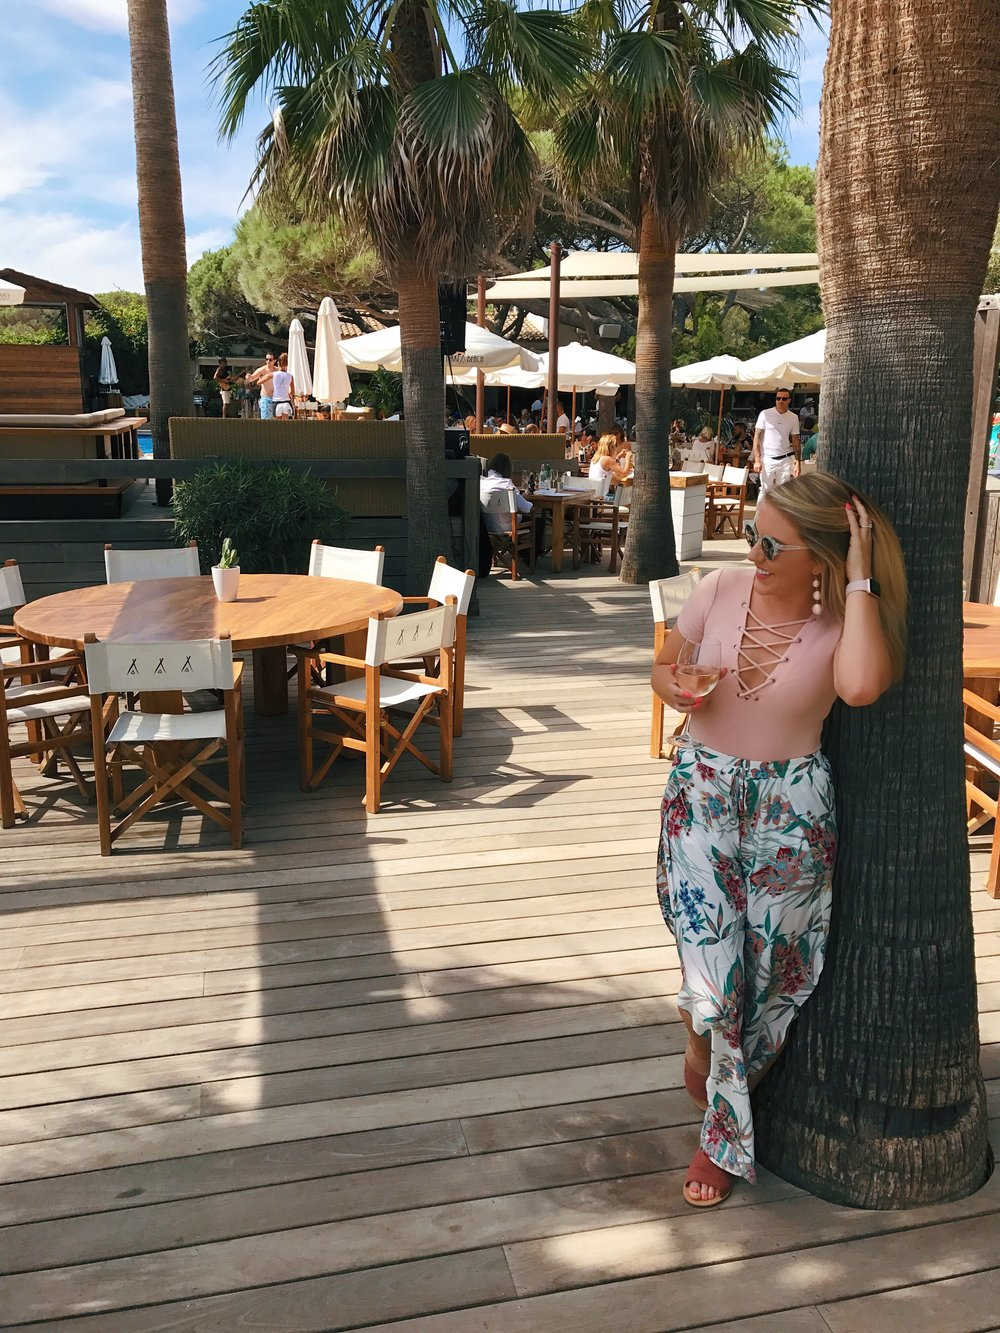 All-You-Can-Eat Brunch at Nikki Beach St Tropez